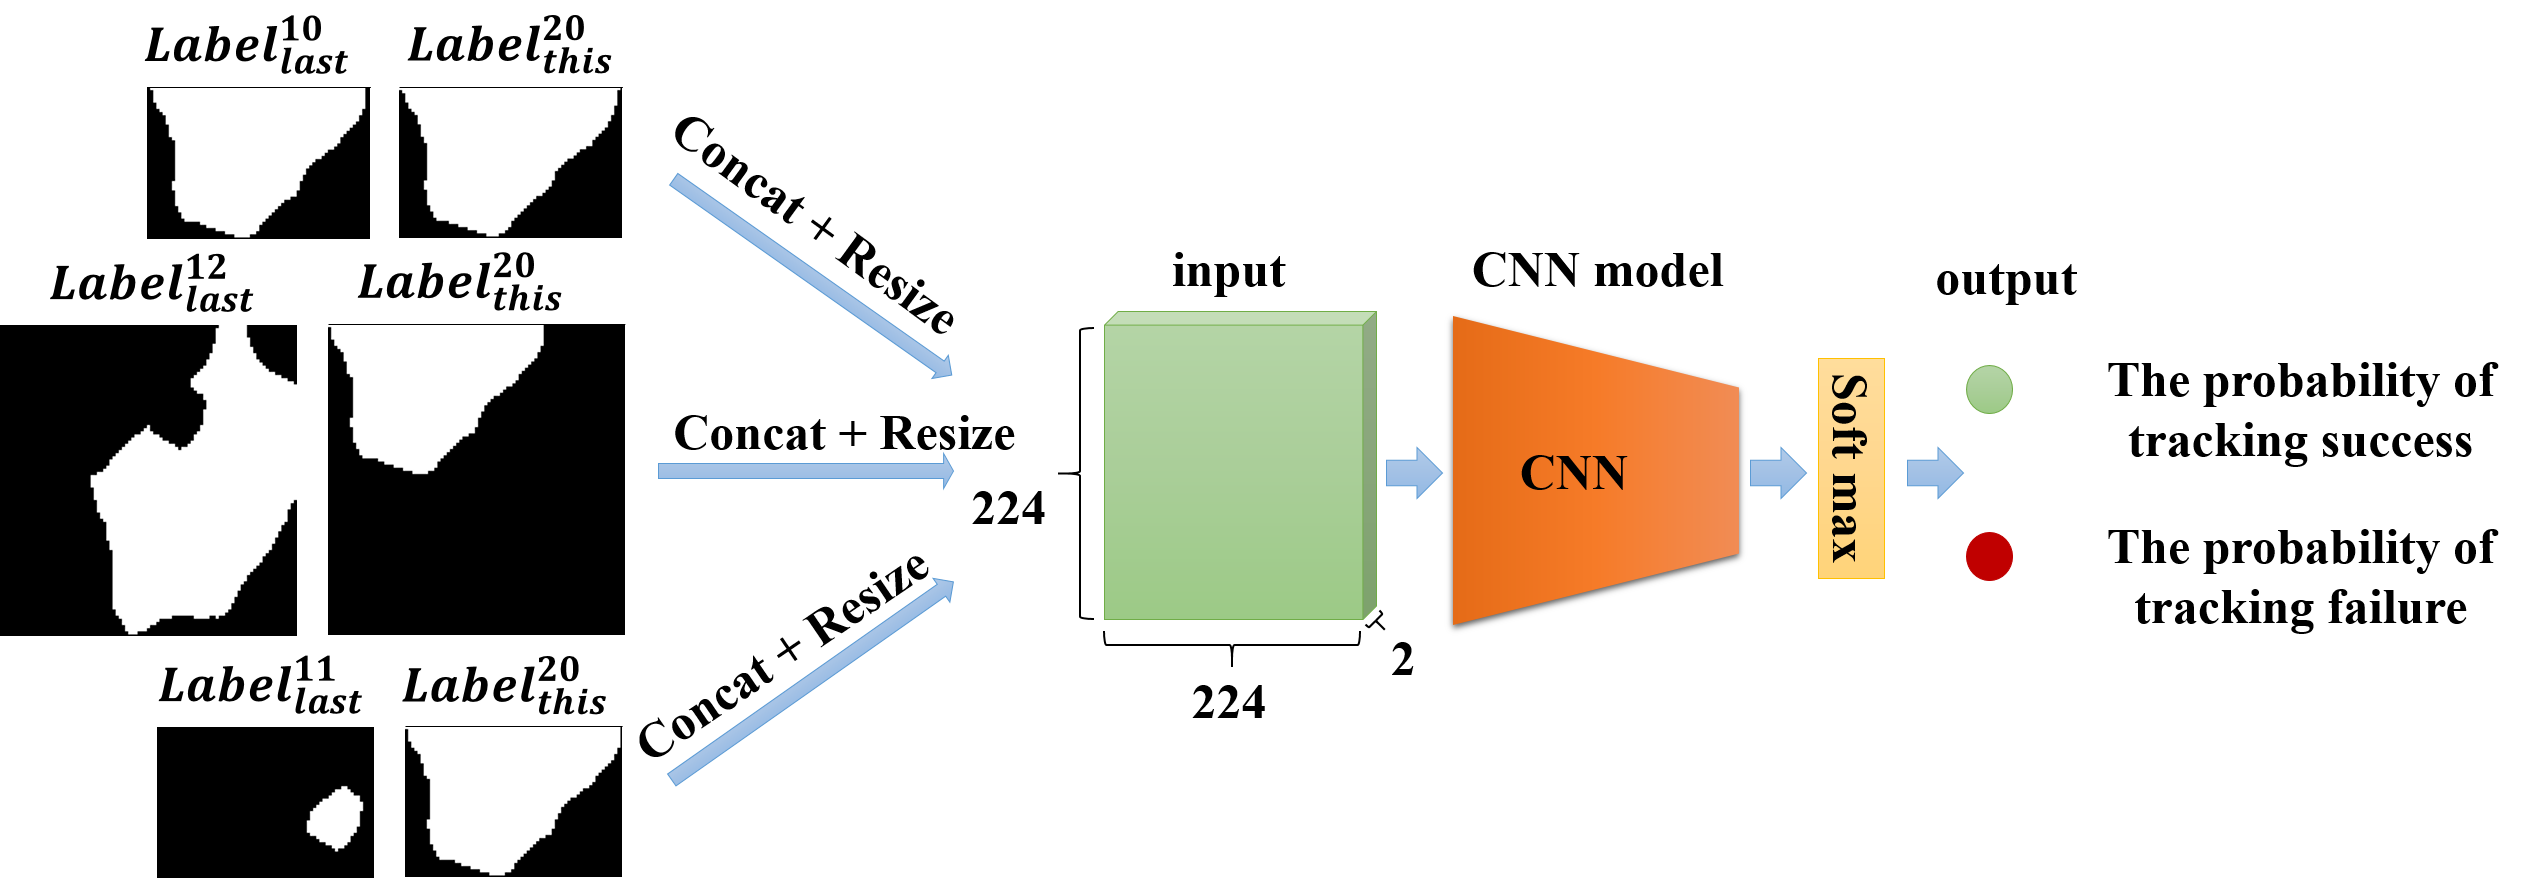 we use image classification network to achieve the similarity of two regions. The similarity is the probability of success tracking.